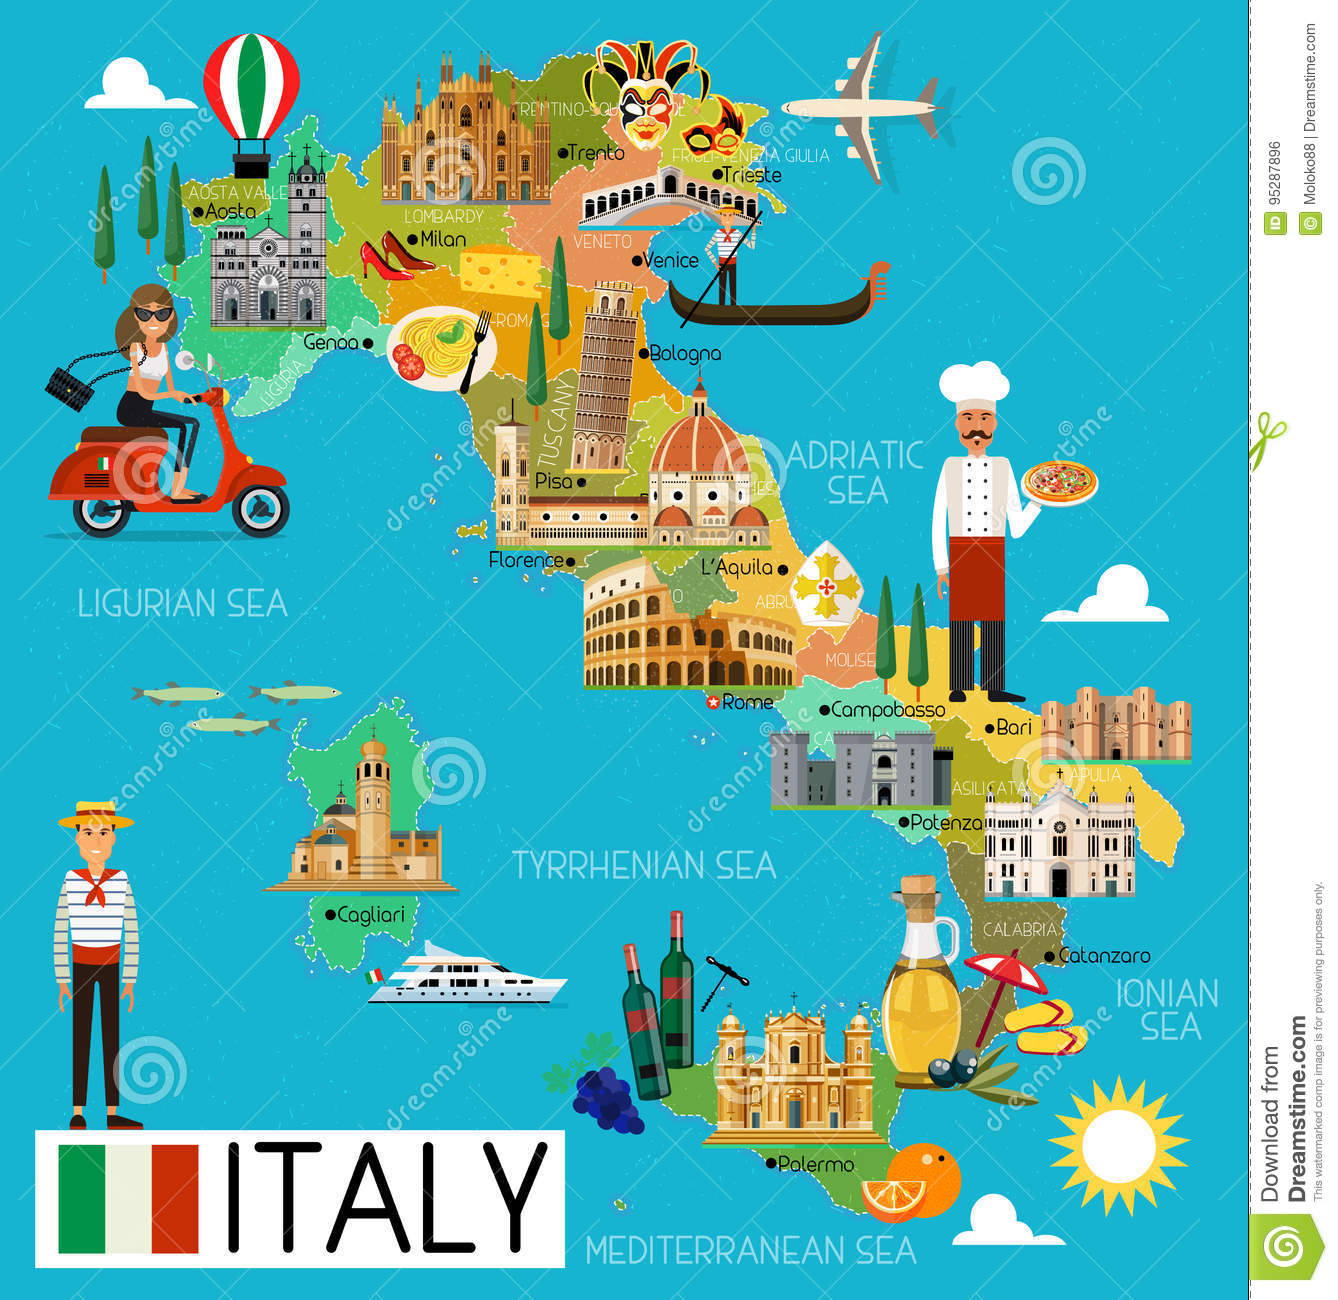 italy-travel-map-icons-vector-illustration-95287896 Icon Map Of Italy Picture on haiti map icon, singapore map icon, brazil map icon, finland map icon, spain map icon, bangladesh map icon, jordan map icon, french guiana map icon, botswana map icon, russia map icon, nigeria map icon, morocco map icon, greece map icon, european union map icon, asia map icon, thailand map icon, trinidad and tobago map icon, food map icon, pizza map icon, nordic map icon,